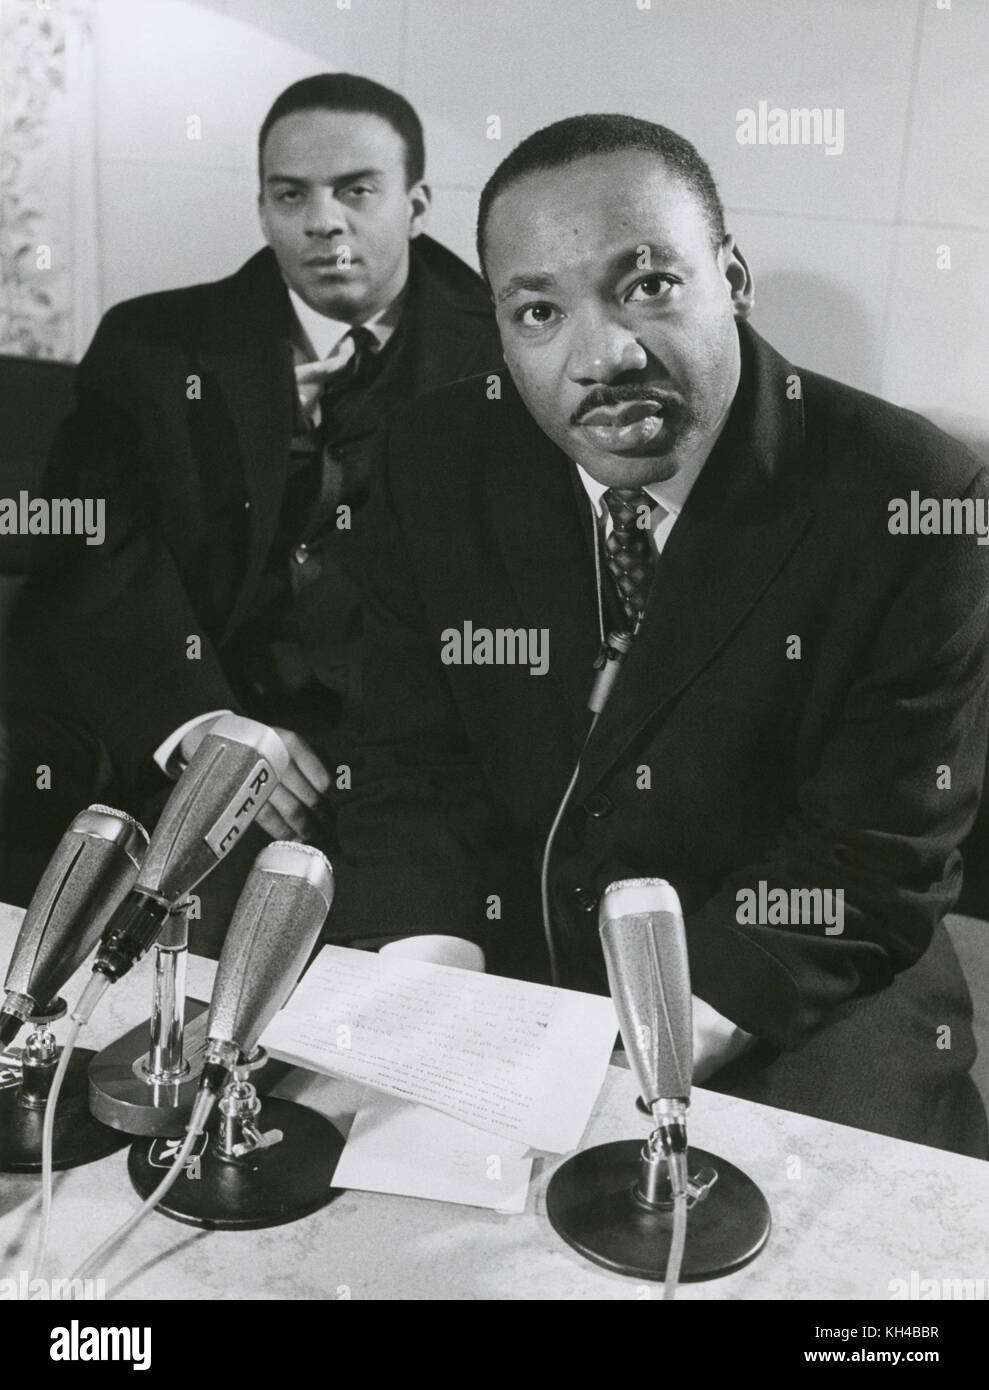 Il dr. Martin Luther King jr. e andrew young durante una conferenza stampa a Arlanda di Stoccolma, in Svezia a dicembre Immagini Stock